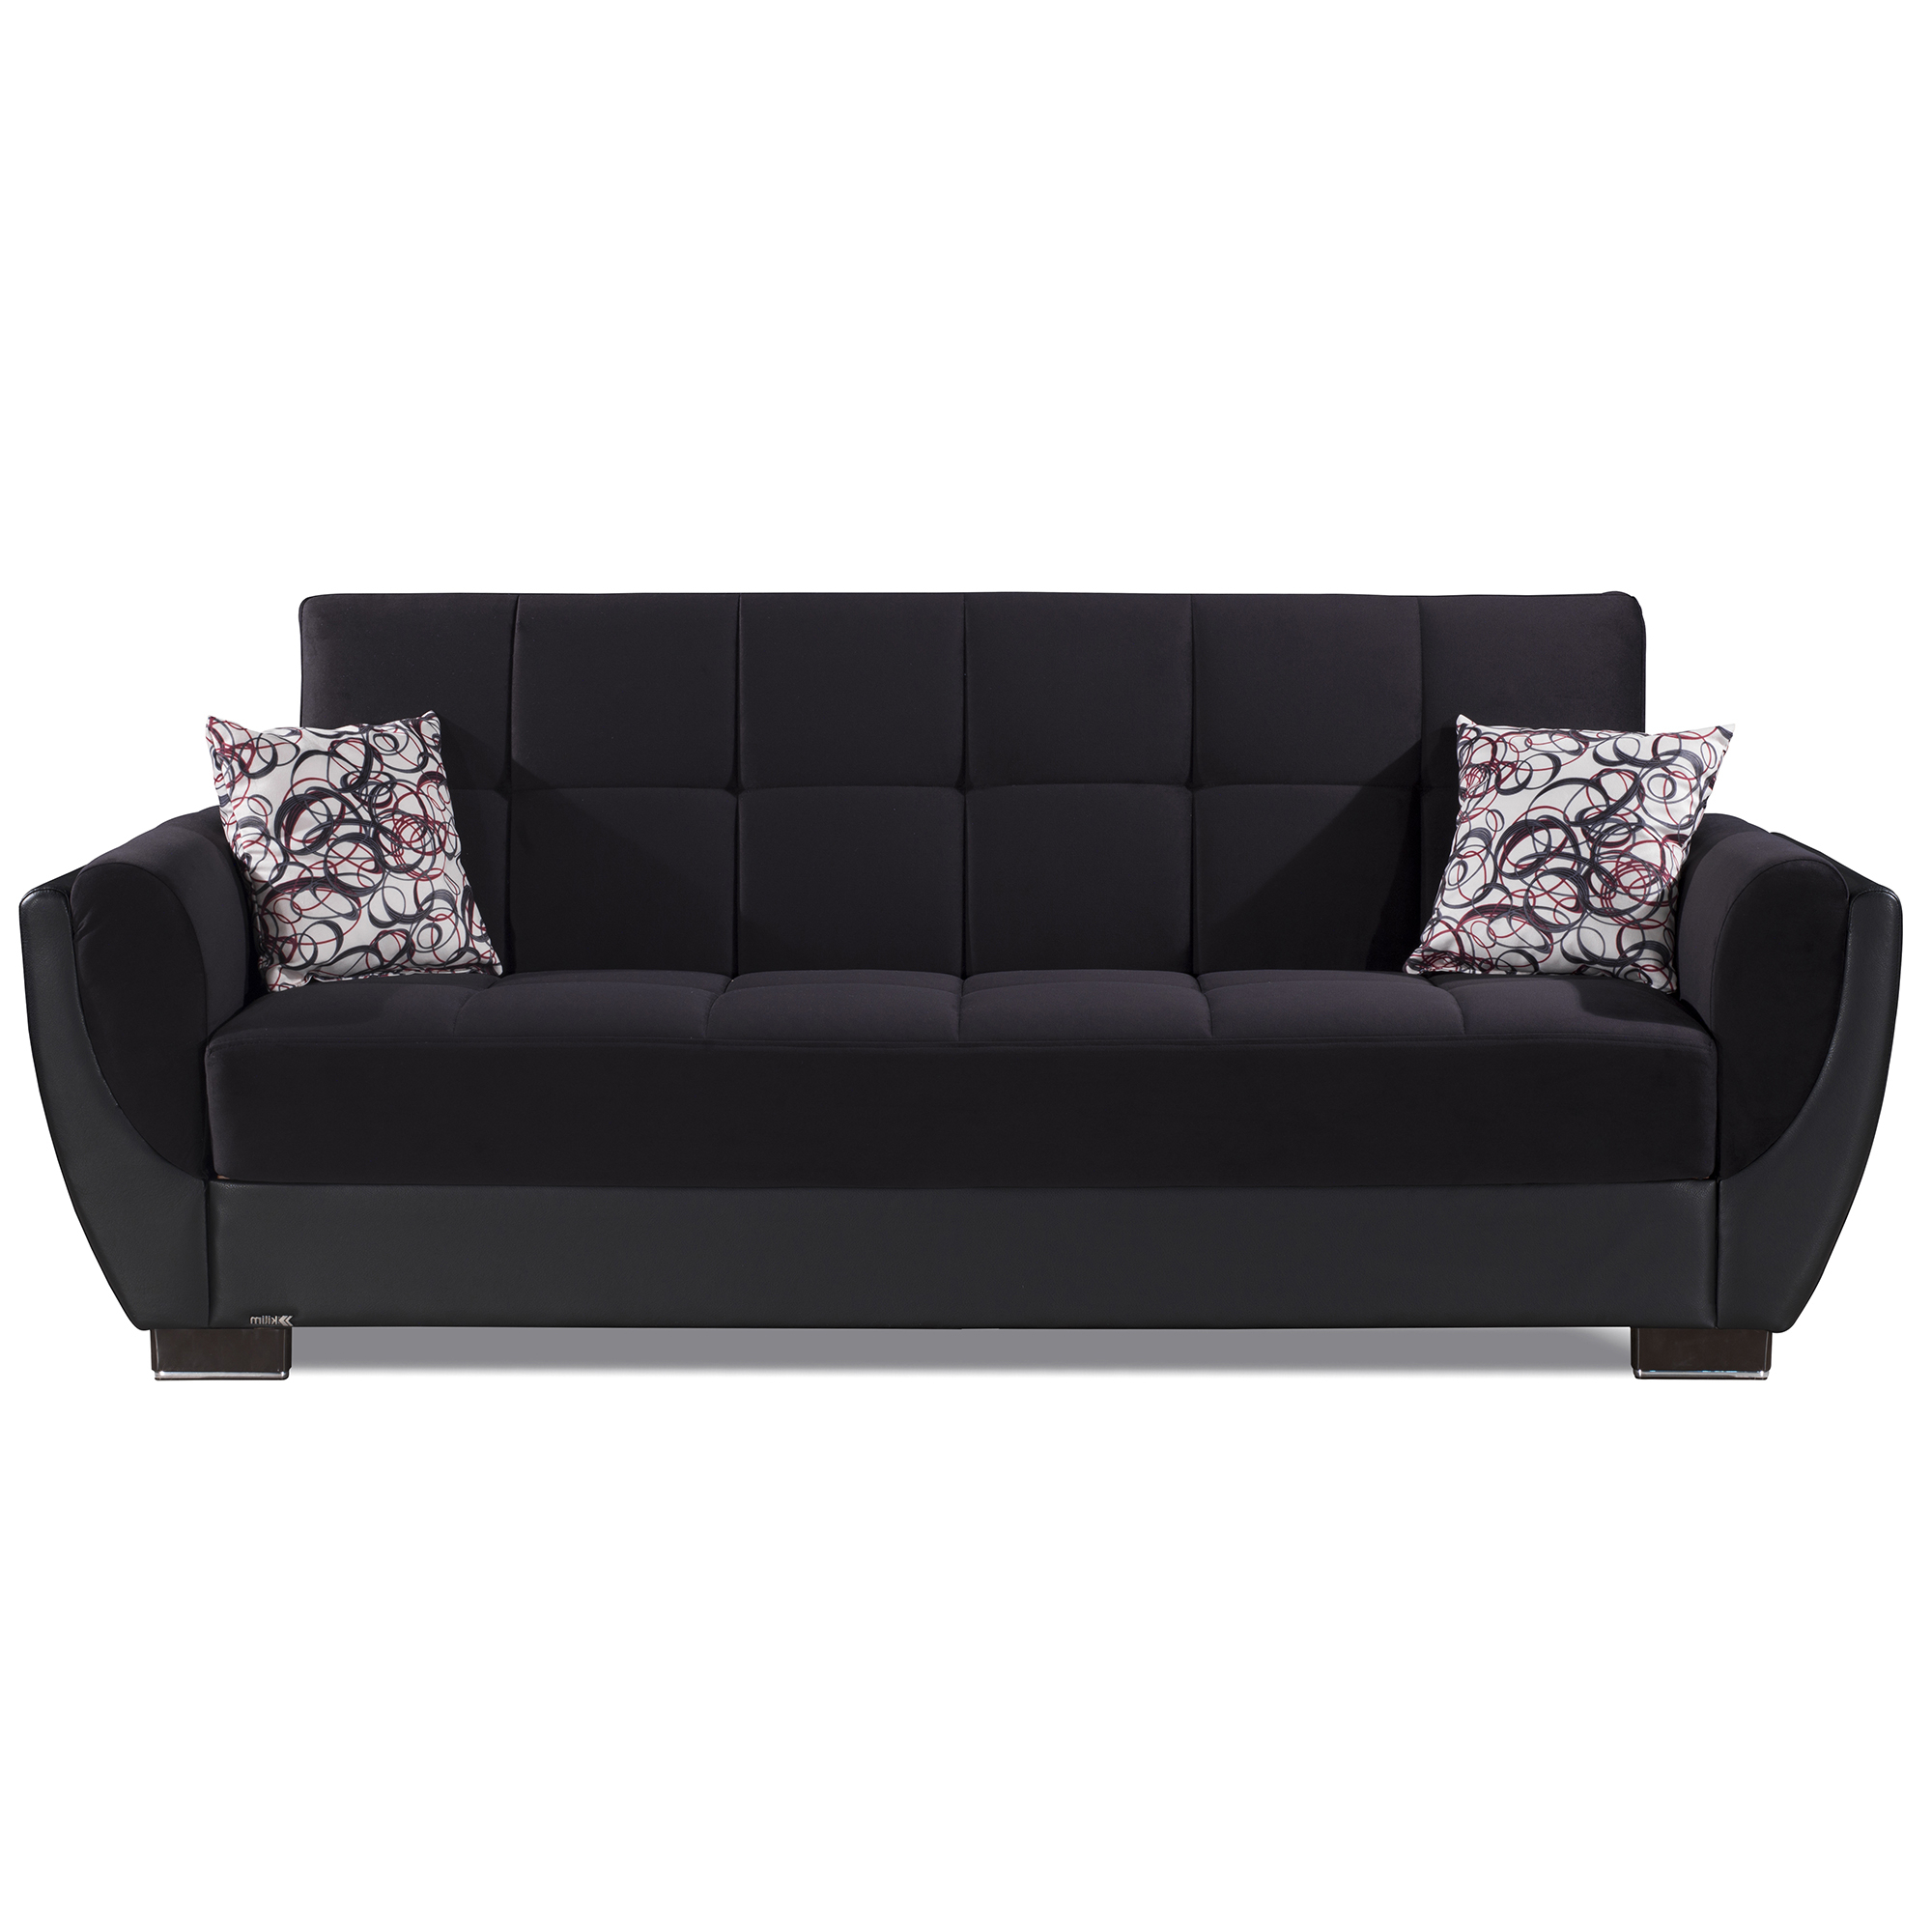 Hartford Storage Sectional Futon Sofas Intended For Most Up To Date Ottomanson Armada Air Fabric Upholstery Sleeper Sofa Bed (View 4 of 25)